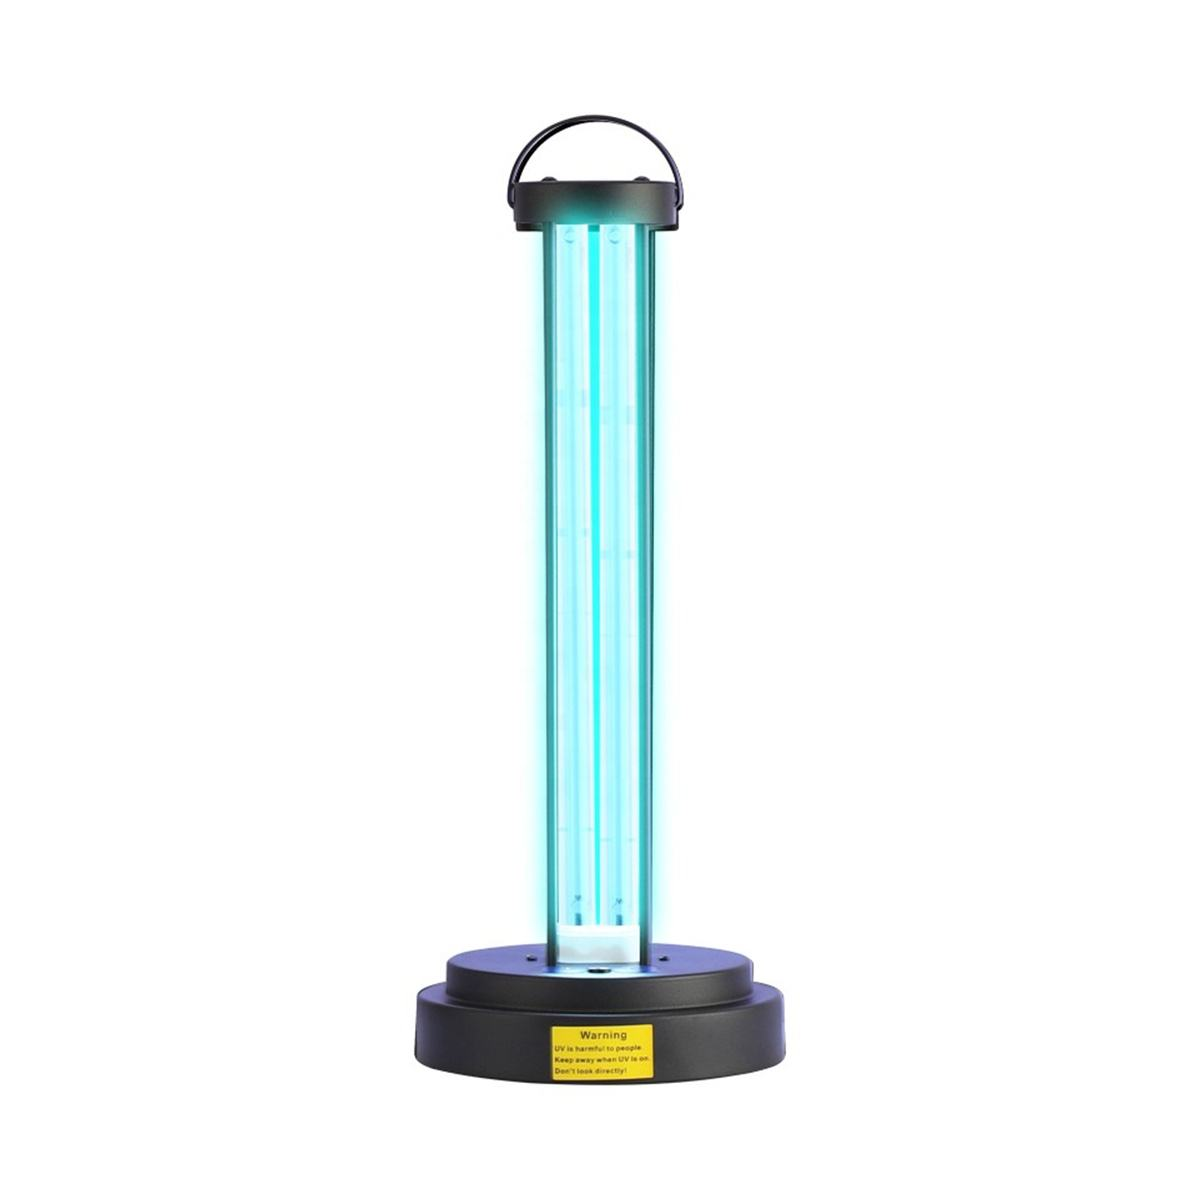 The newest UV Sterilizer lamp UV LED Light UV Germicidal lamp for Kitchen balcony bathroom